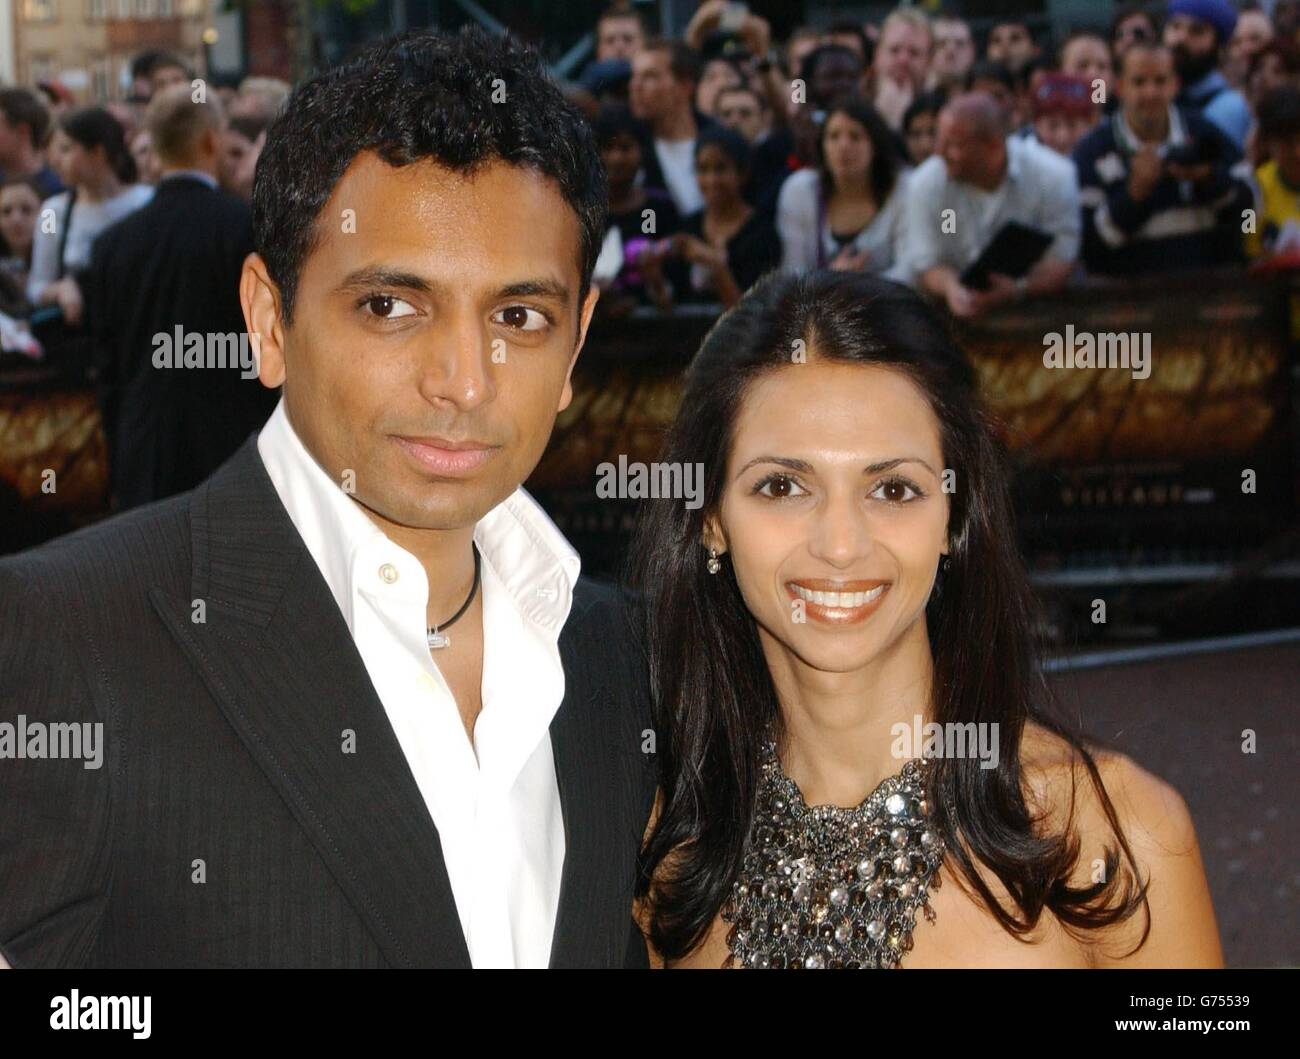 Film Director M Night Shyamalan And His Wife Stock Photos